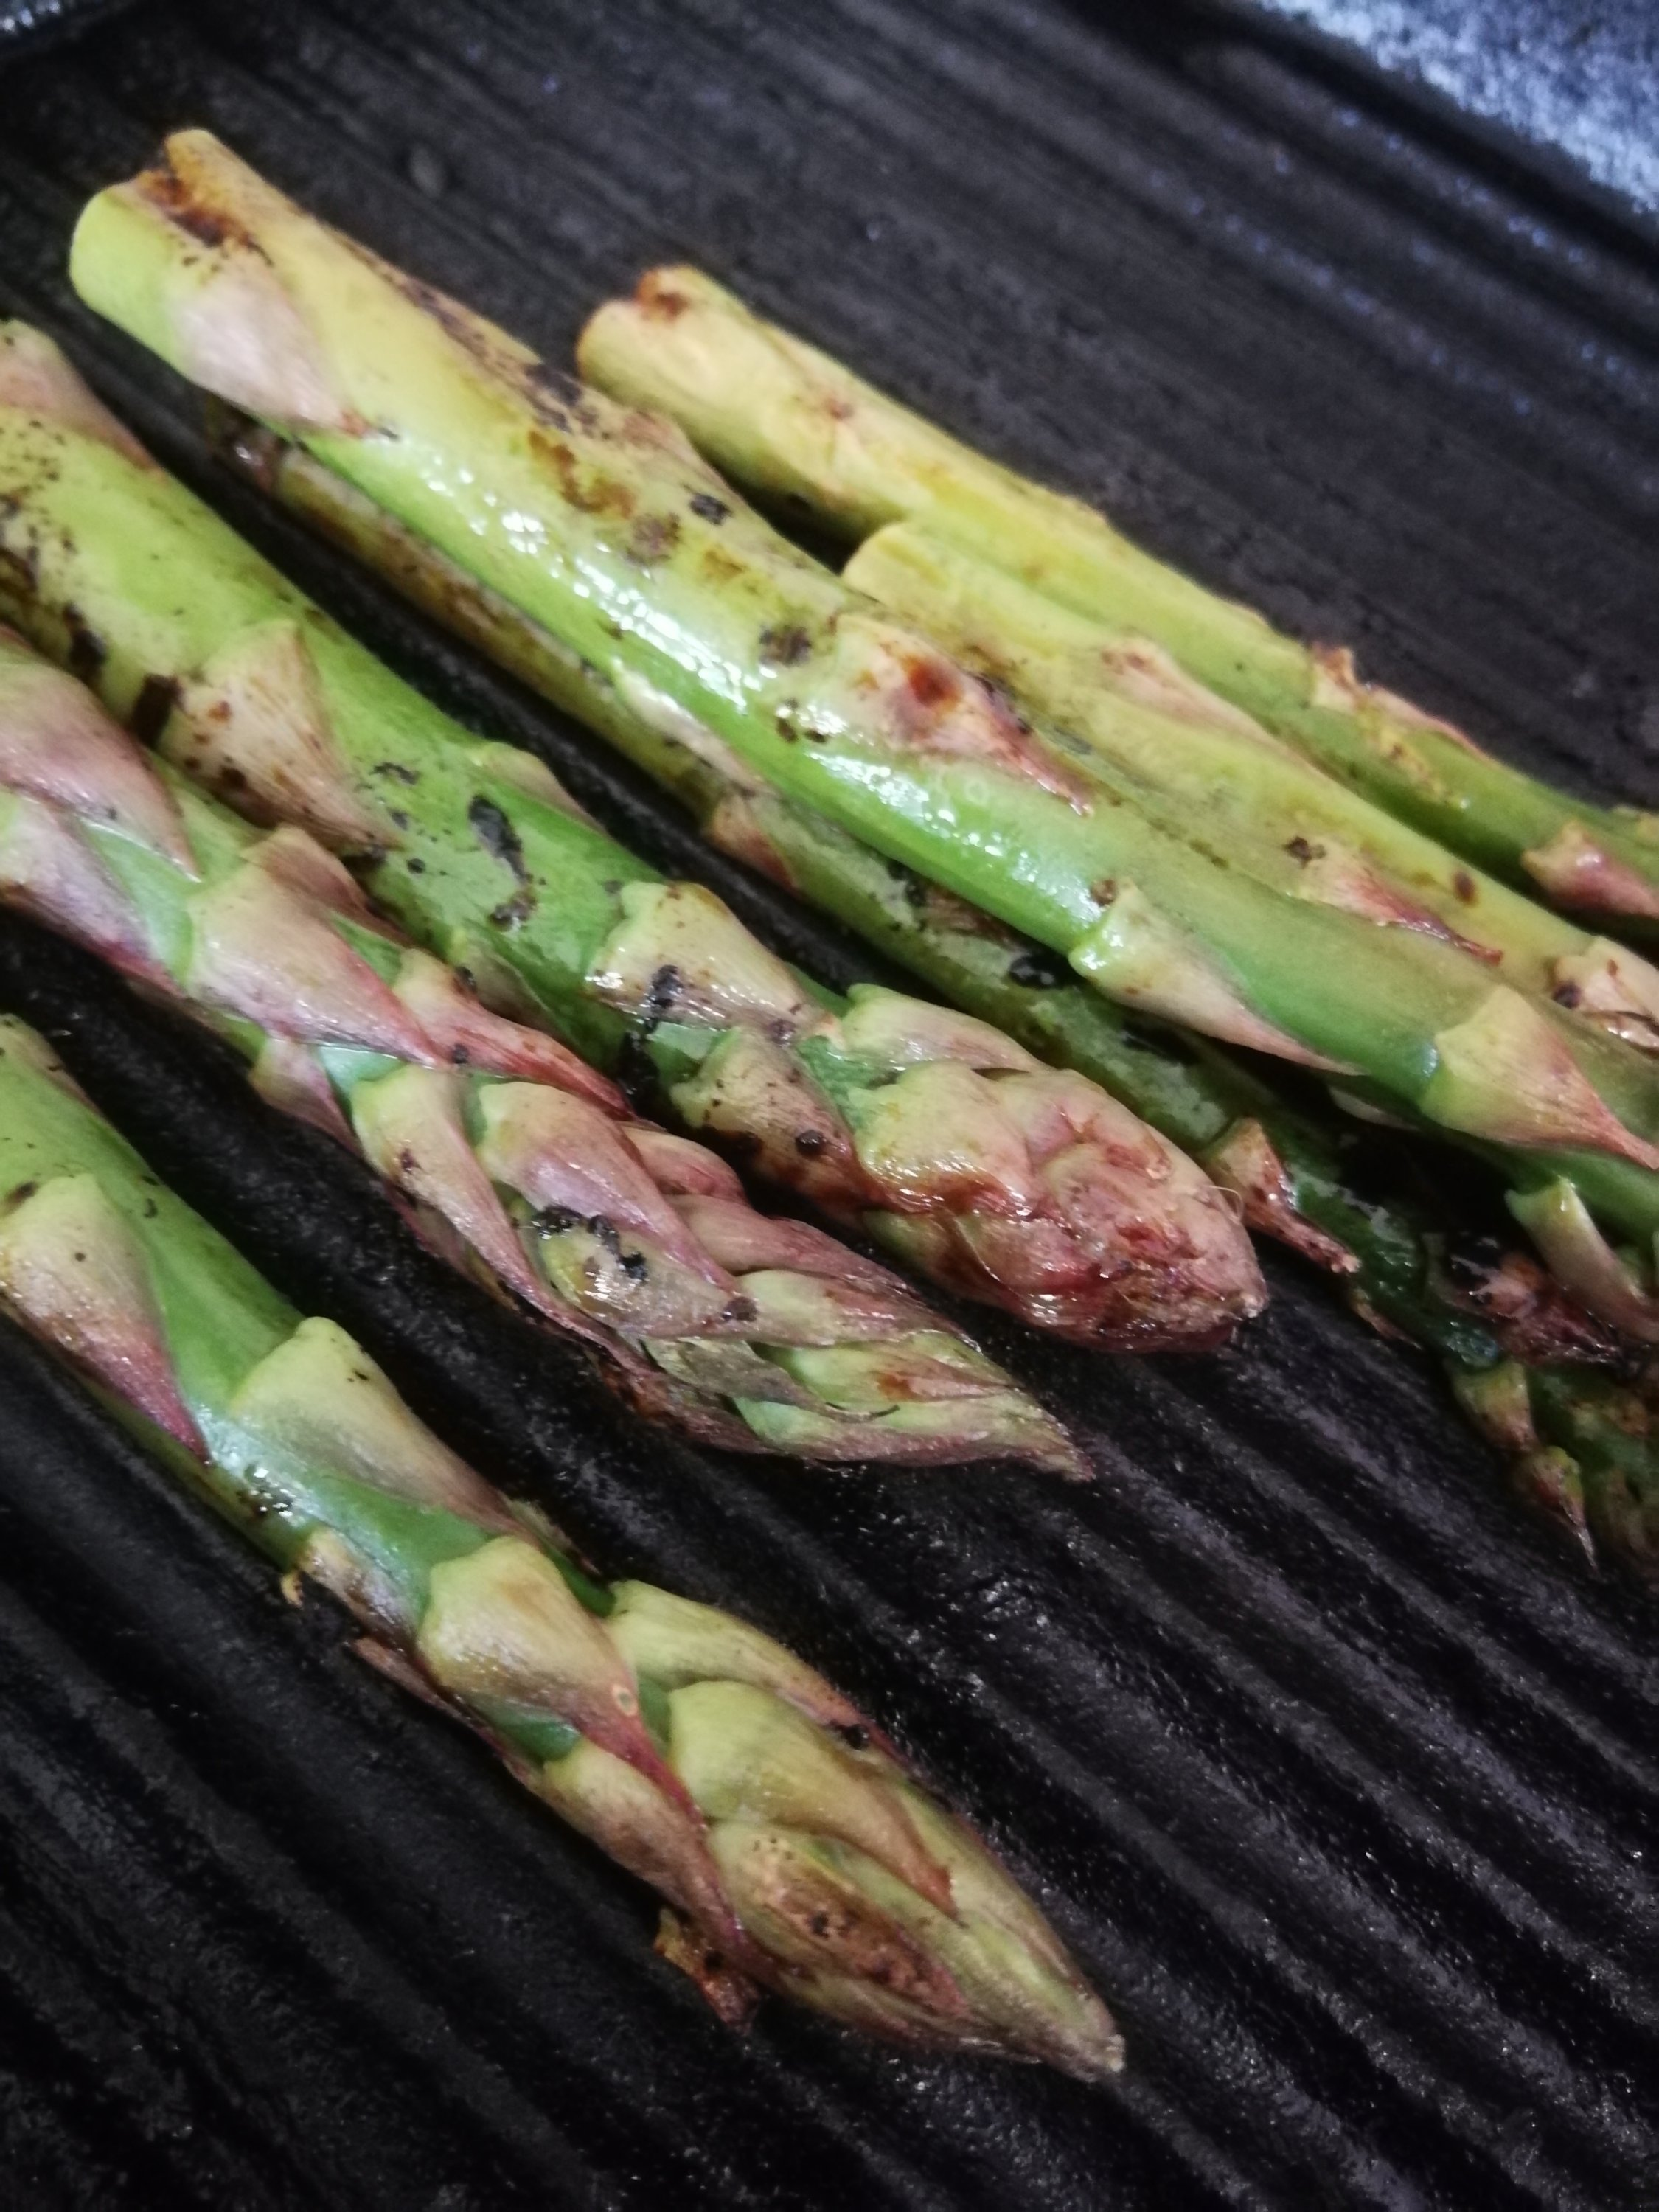 British asparagus looking delicious in a cast iron griddle pan